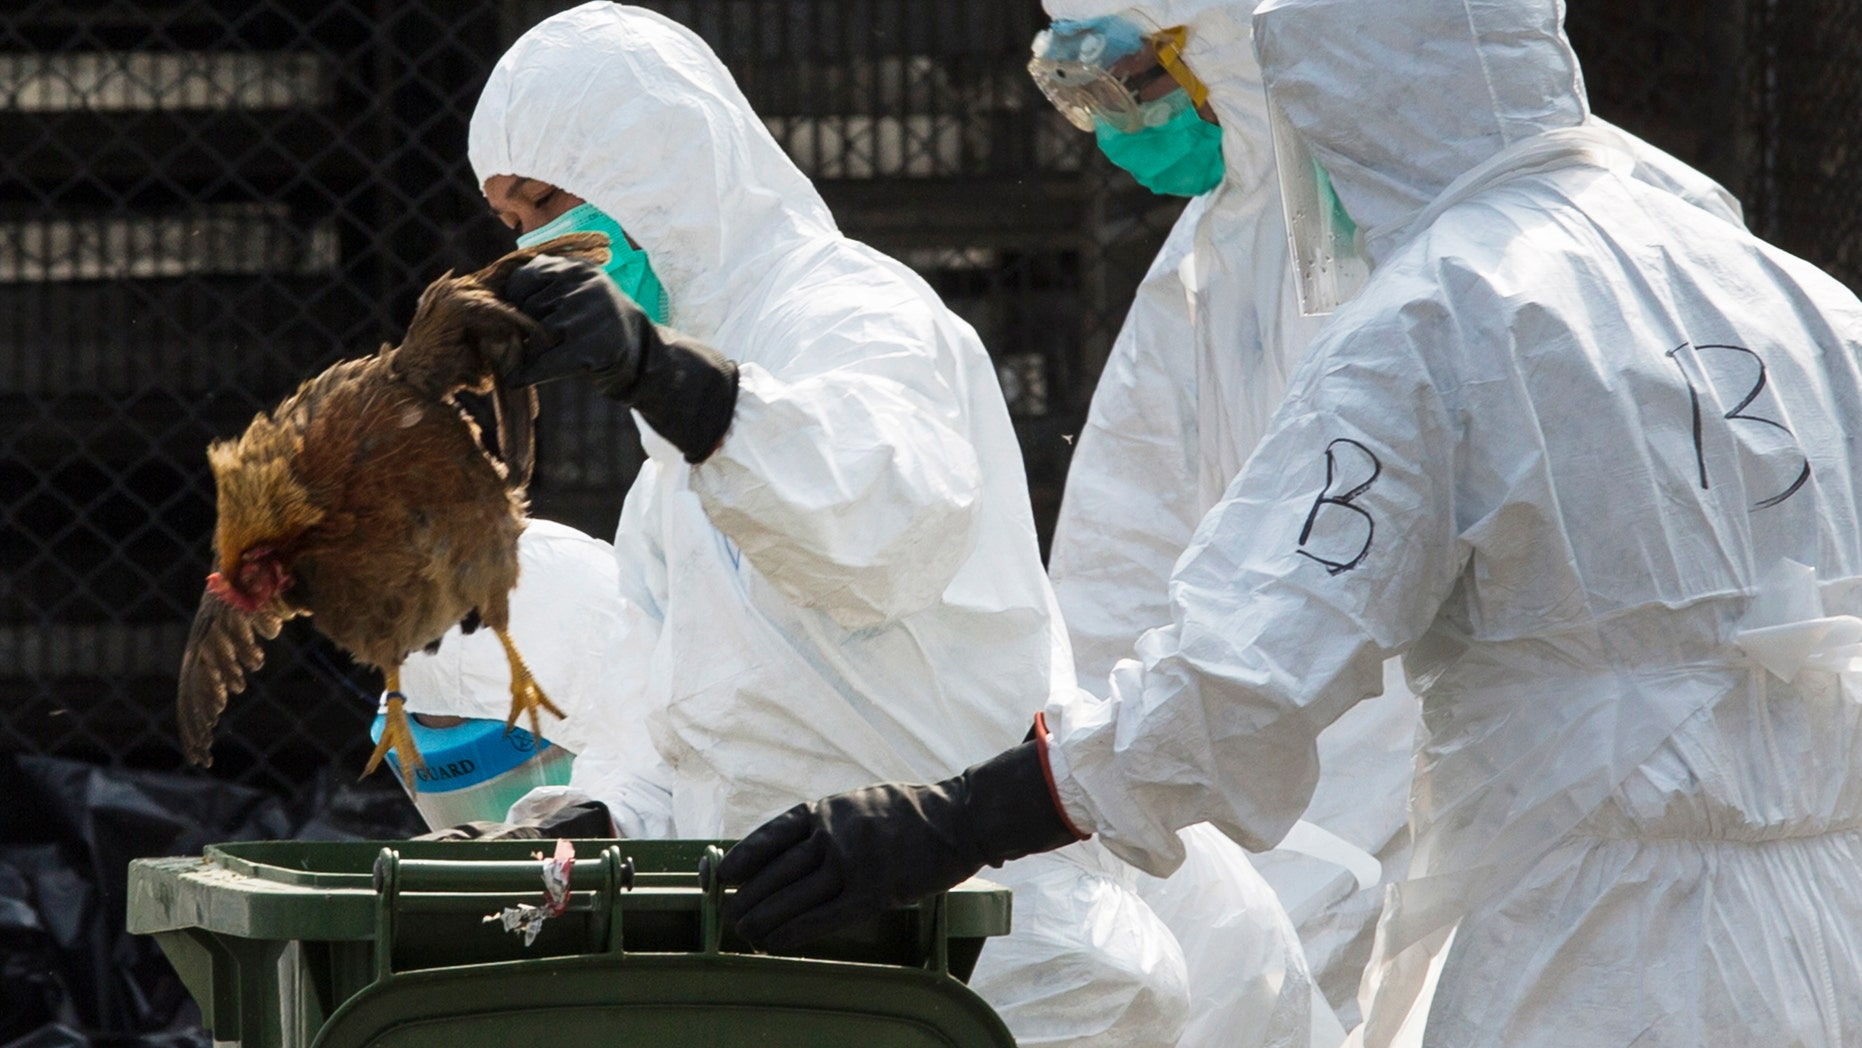 A health worker removes a dead chicken at a wholesale poultry market in Hong Kong January 28, 2014. REUTERS/Tyrone Siu